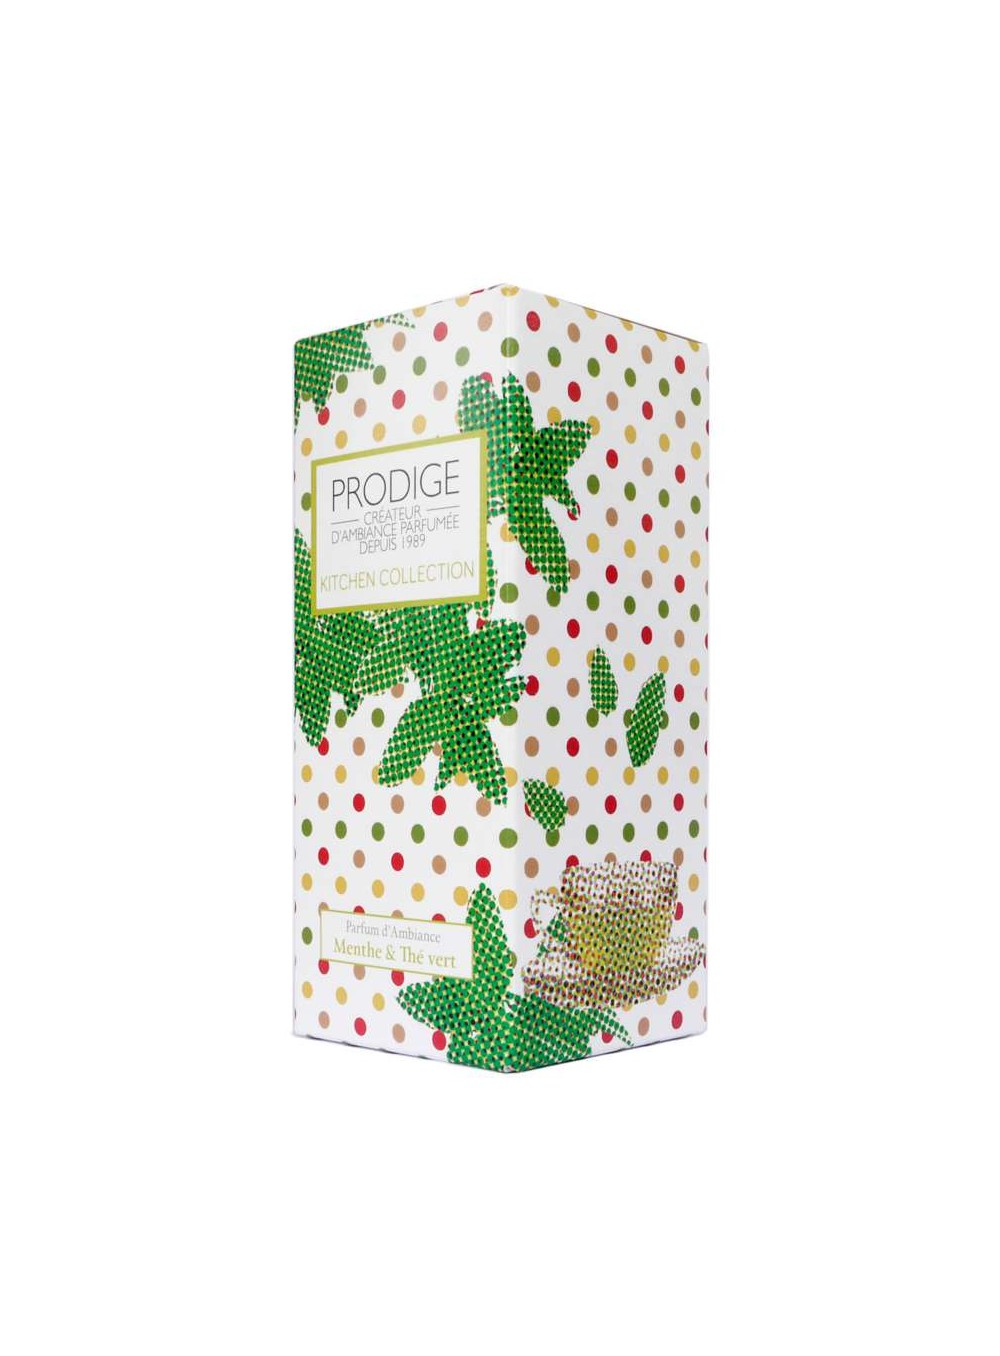 Prodige - Collection Kitchen x Home Perfume - MINT ang GREEN TEA